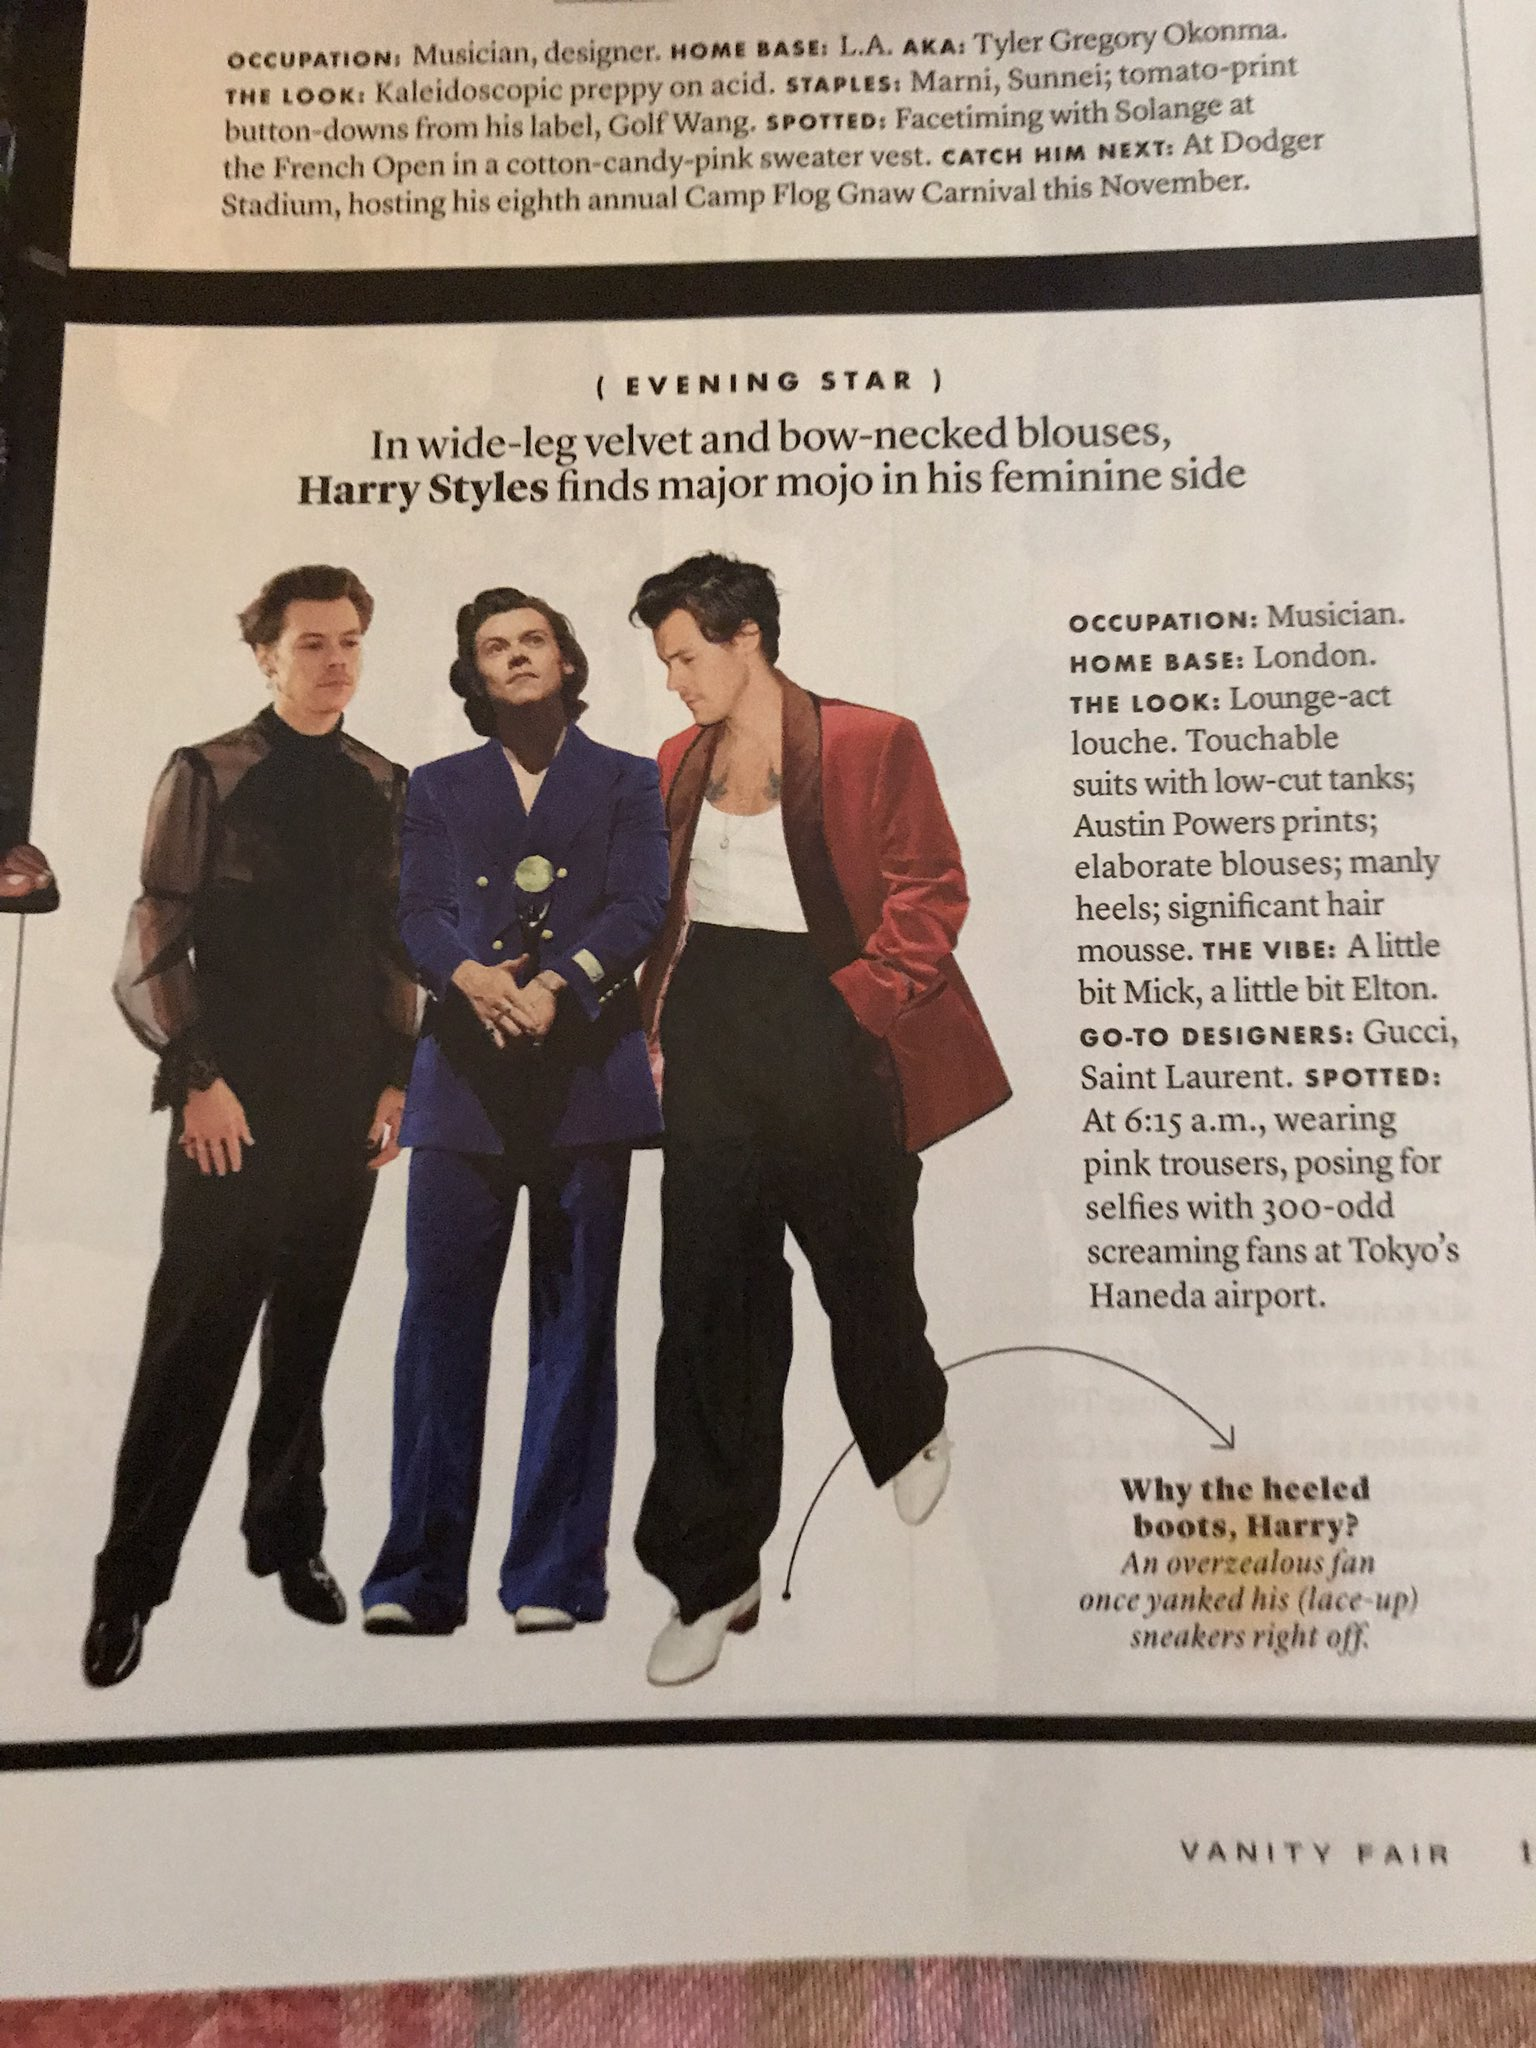 Karen On Twitter Just Got The October Issue Of Vanity Fair And Harry Made The Vanity Fair Best Dressed List No Surprise There